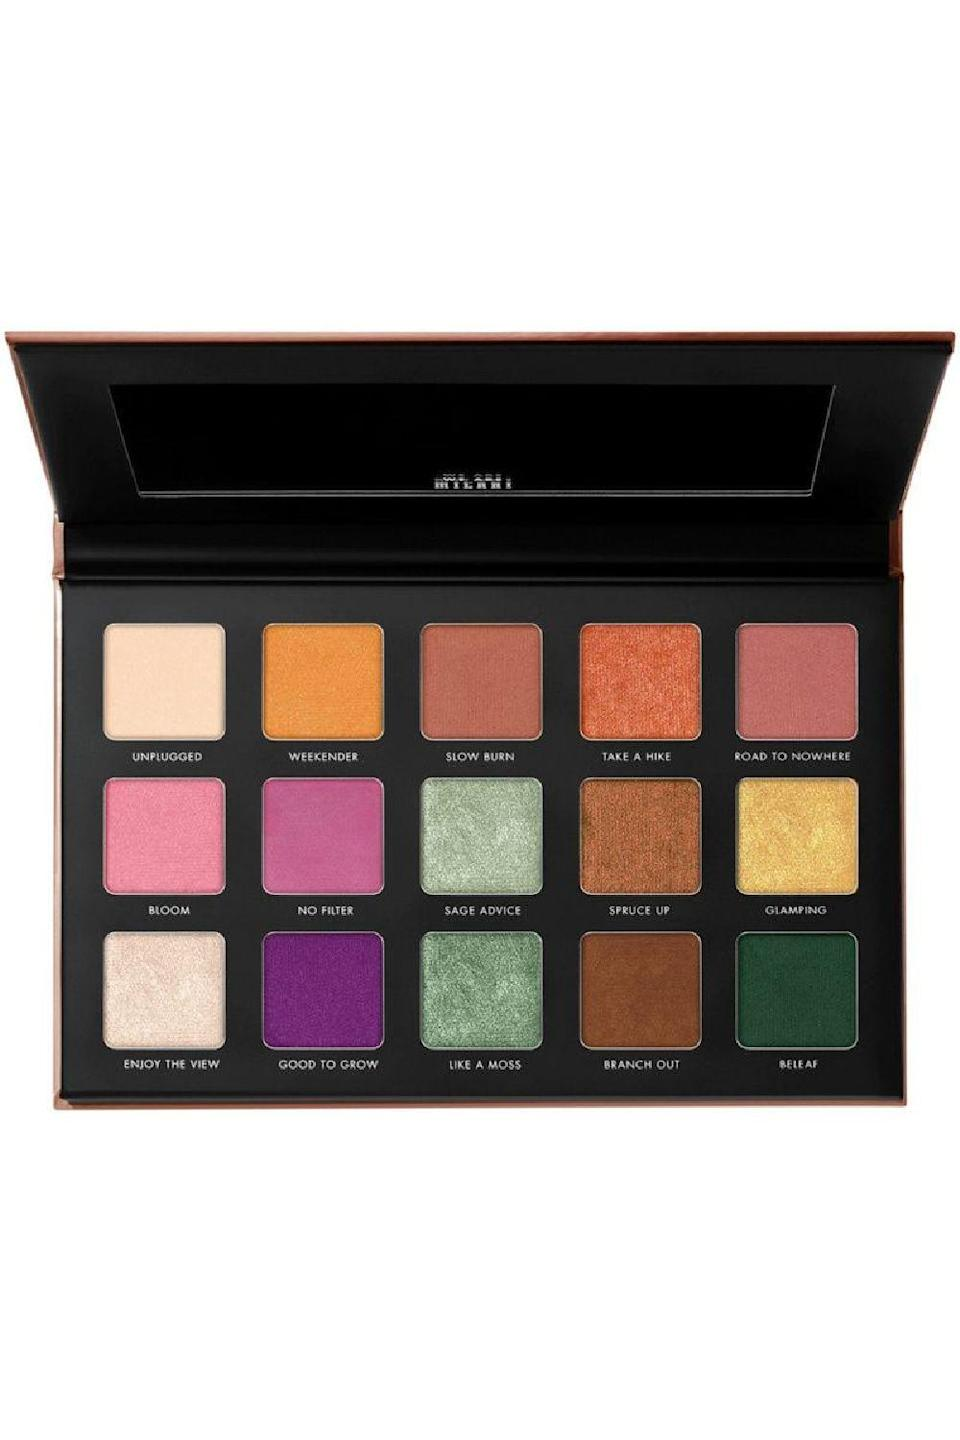 """<p><strong>Milani</strong></p><p>ulta.com</p><p><strong>$19.99</strong></p><p><a href=""""https://go.redirectingat.com?id=74968X1596630&url=https%3A%2F%2Fwww.ulta.com%2Fgilded-terra-eyeshadow-palette%3FproductId%3Dpimprod2021055&sref=https%3A%2F%2Fwww.cosmopolitan.com%2Fstyle-beauty%2Fbeauty%2Fg36596599%2Fbest-eyeshadow-palettes%2F"""" rel=""""nofollow noopener"""" target=""""_blank"""" data-ylk=""""slk:Shop Now"""" class=""""link rapid-noclick-resp"""">Shop Now</a></p><p>Here's the thing about <a href=""""https://www.cosmopolitan.com/style-beauty/beauty/g28550417/best-drugstore-eyeshadows/"""" rel=""""nofollow noopener"""" target=""""_blank"""" data-ylk=""""slk:drugstore eyeshadows"""" class=""""link rapid-noclick-resp"""">drugstore eyeshadows</a>: They can be really, really great, or really, really not. This one falls in the first category. Unlike cheap eyeshadows that offer dusty, faint, muddy shades, this palette proves that <strong>bright, bold, blendable colors and shimmers that actually show up </strong>*can* be done for an affordable price. </p>"""